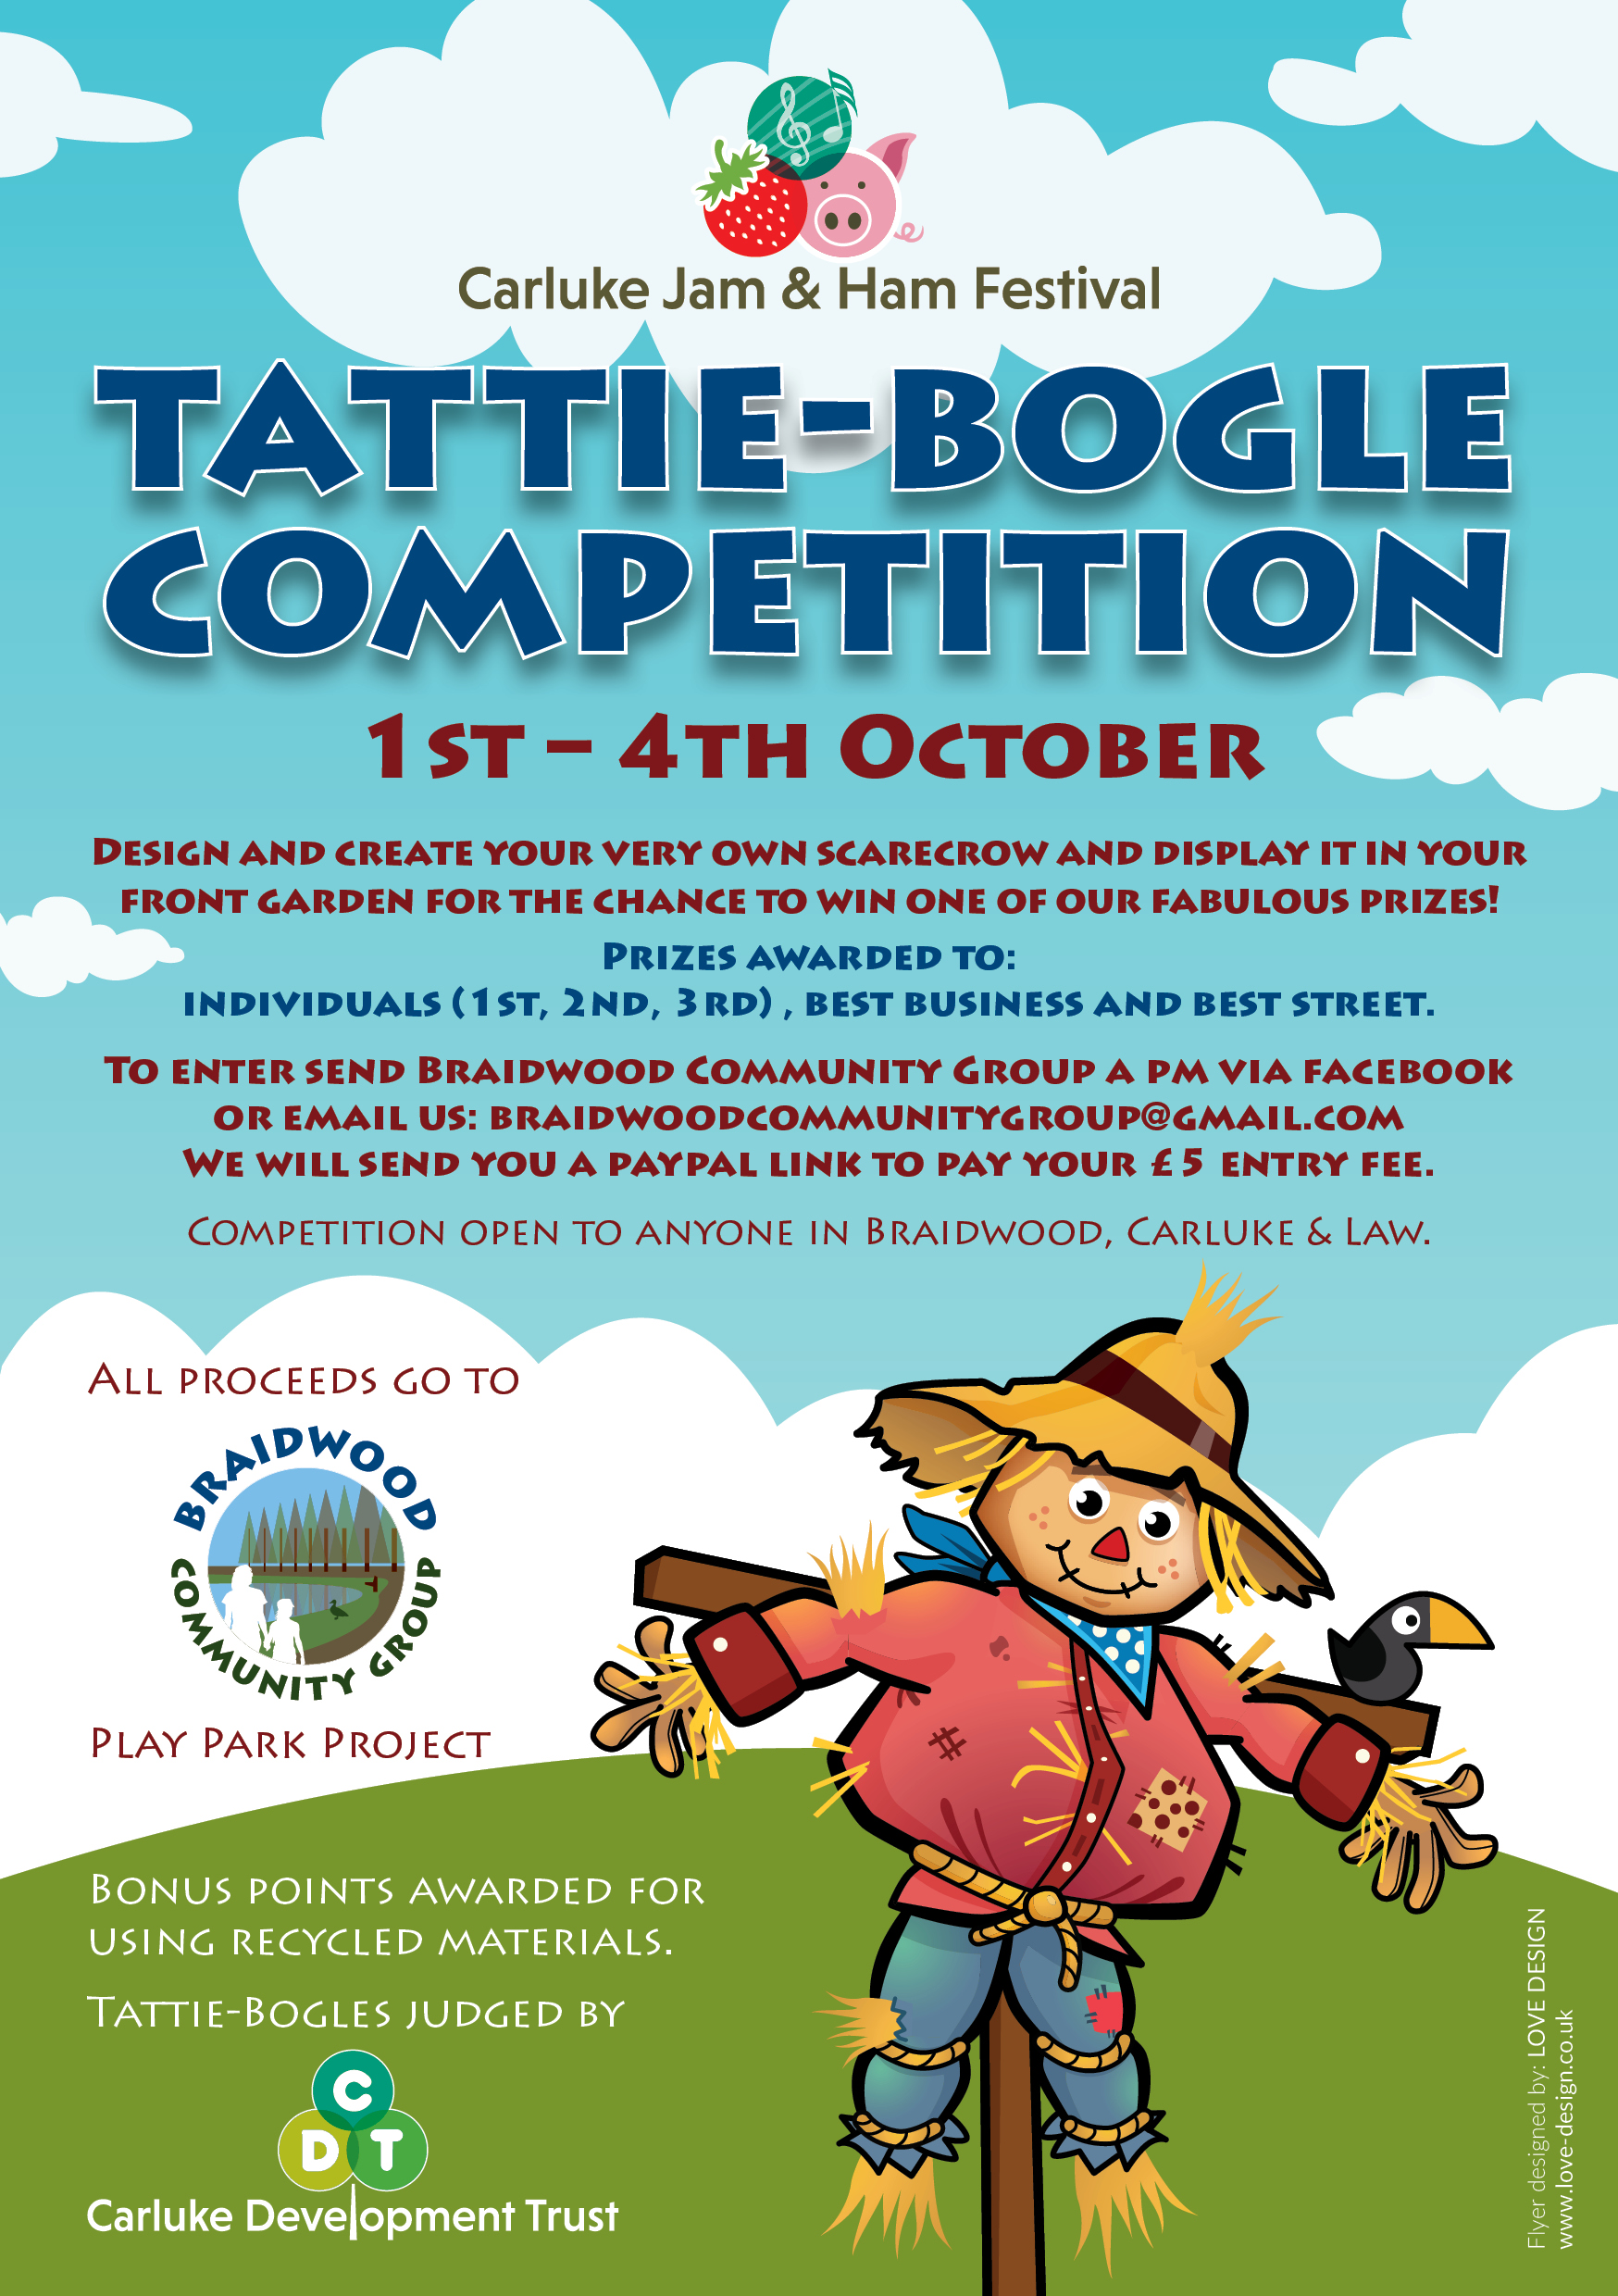 Tattie Bogie Competition, Carluke, Law, Braidwood